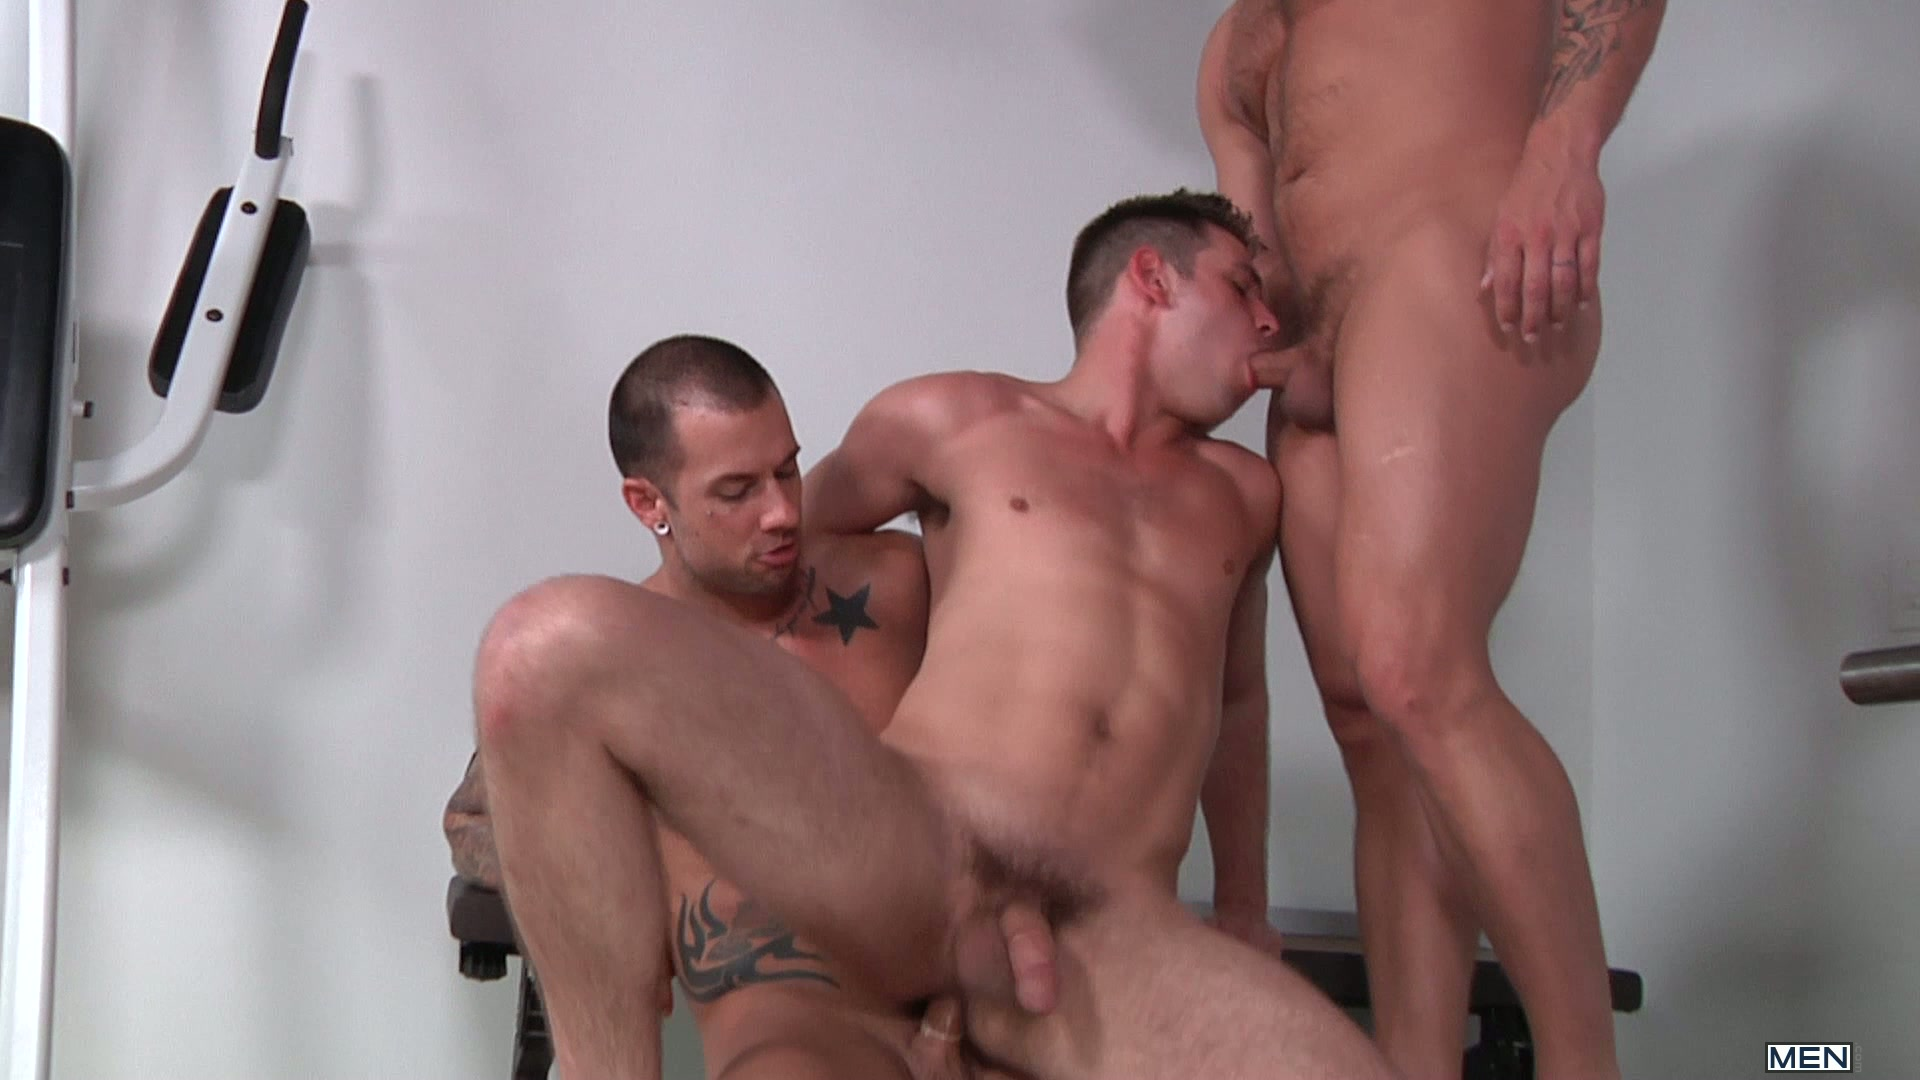 Watch Football Fuckdown Part 2 – Bdas – Big Dicks At School – Colby Jansen – Duncan Black And Rod Daily (MEN.COM) Gay Porn Tube Videos Gifs And Free XXX HD Sex Movies Photos Online